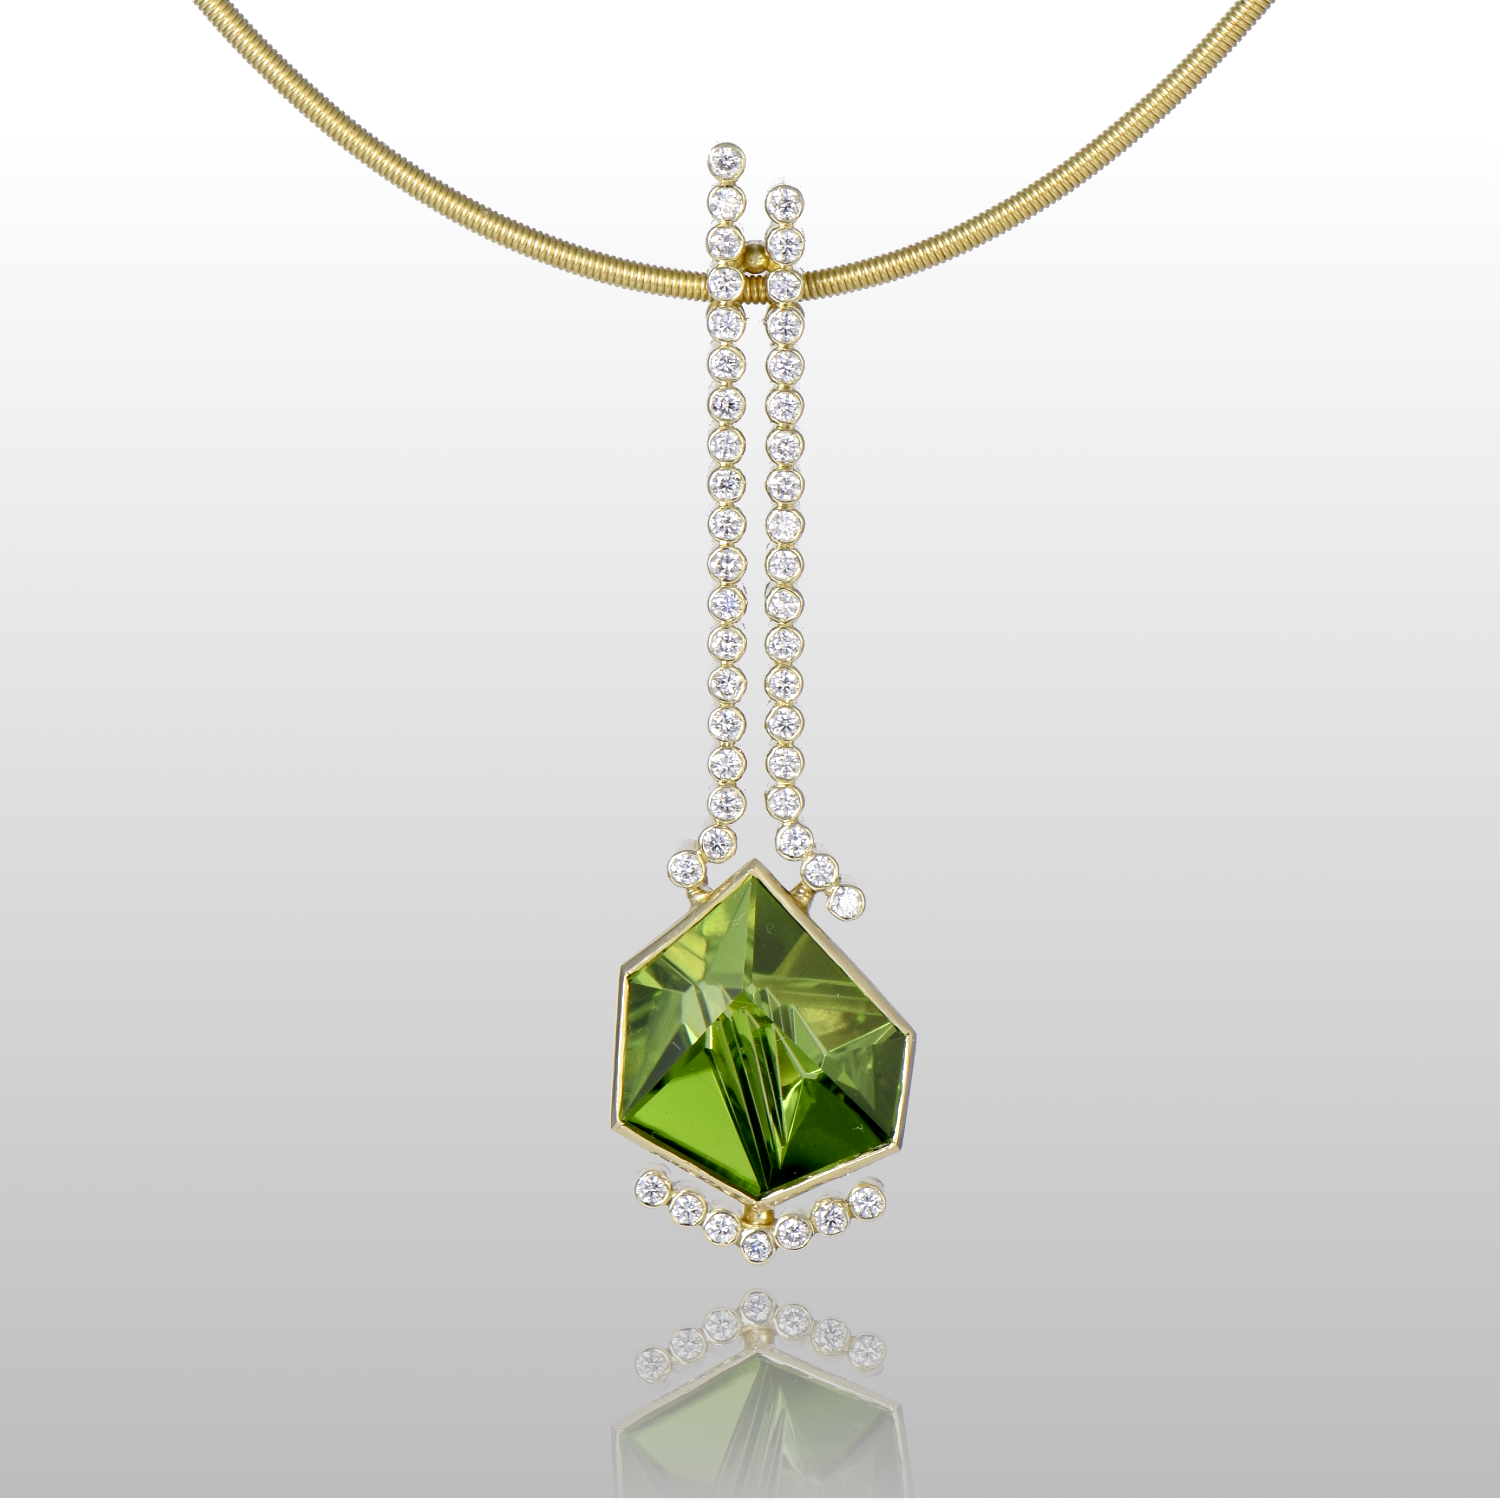 Contemporary Necklace in 18k Gold with a Peridot (5.33cts), cut by Tom Munsteiner and 45 Diamonds by Pratima Design Fine Art Jewelry